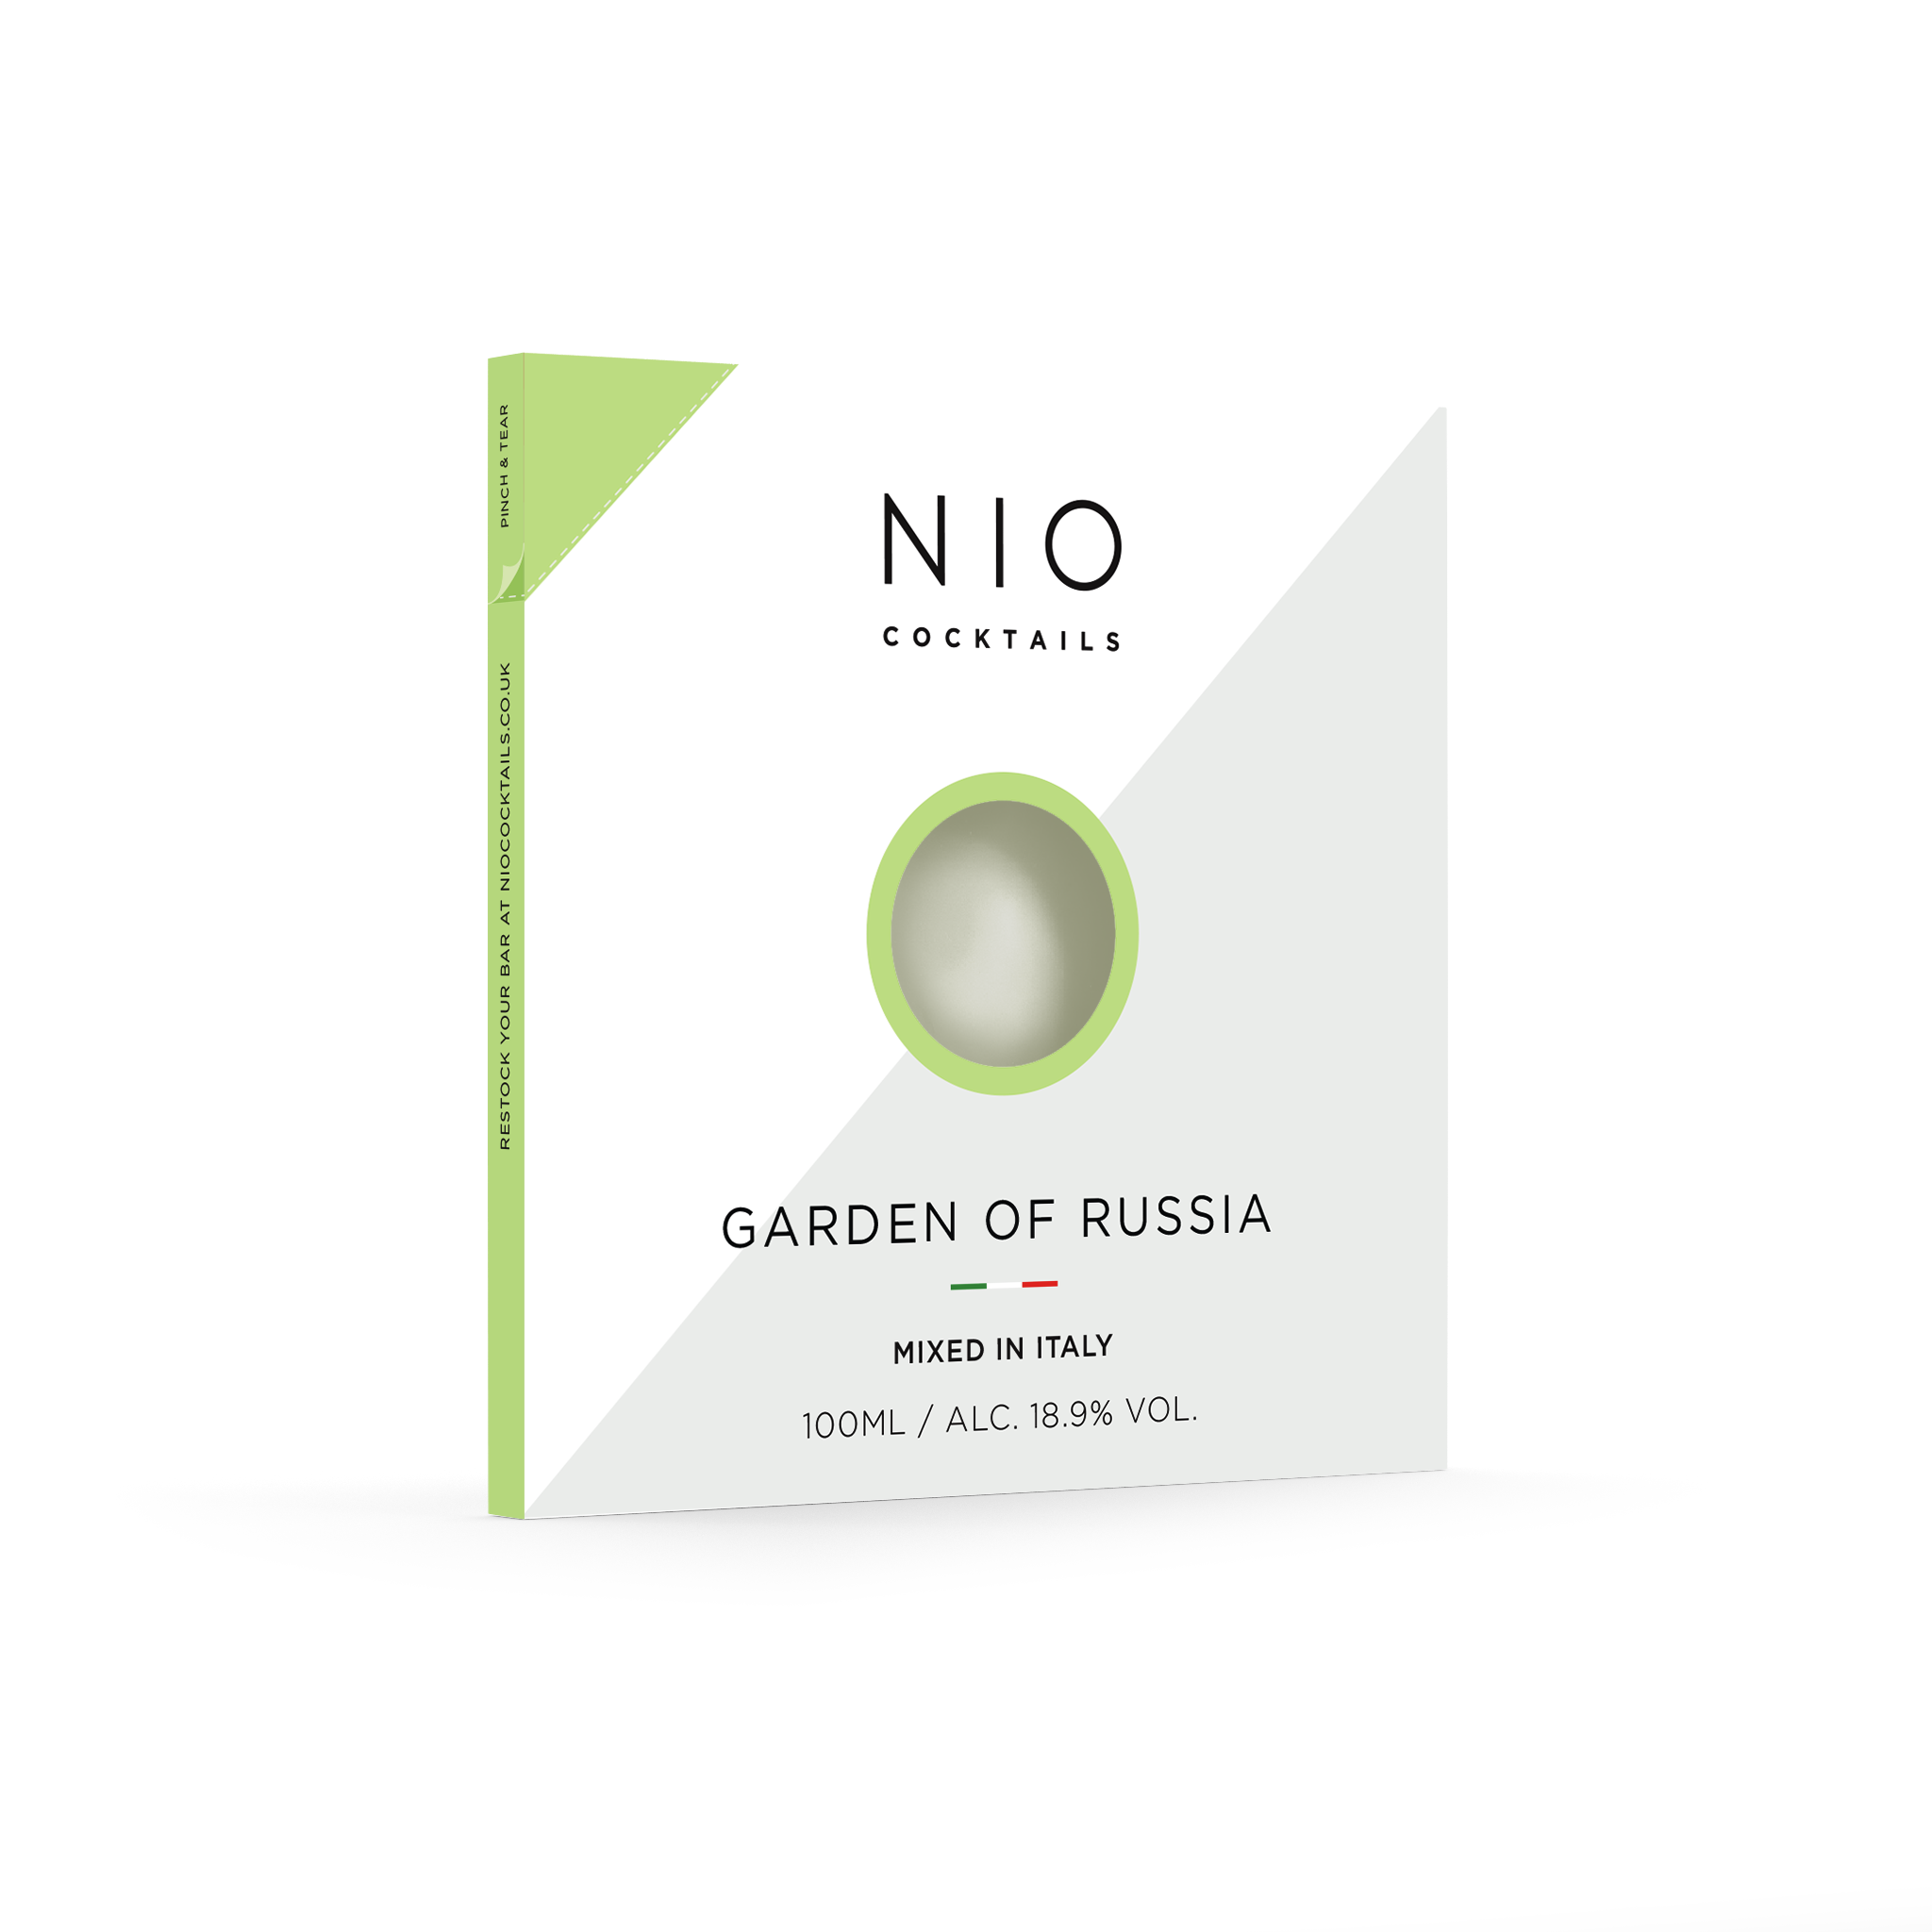 nio_cocktails_box_primavera_garden_of_russia